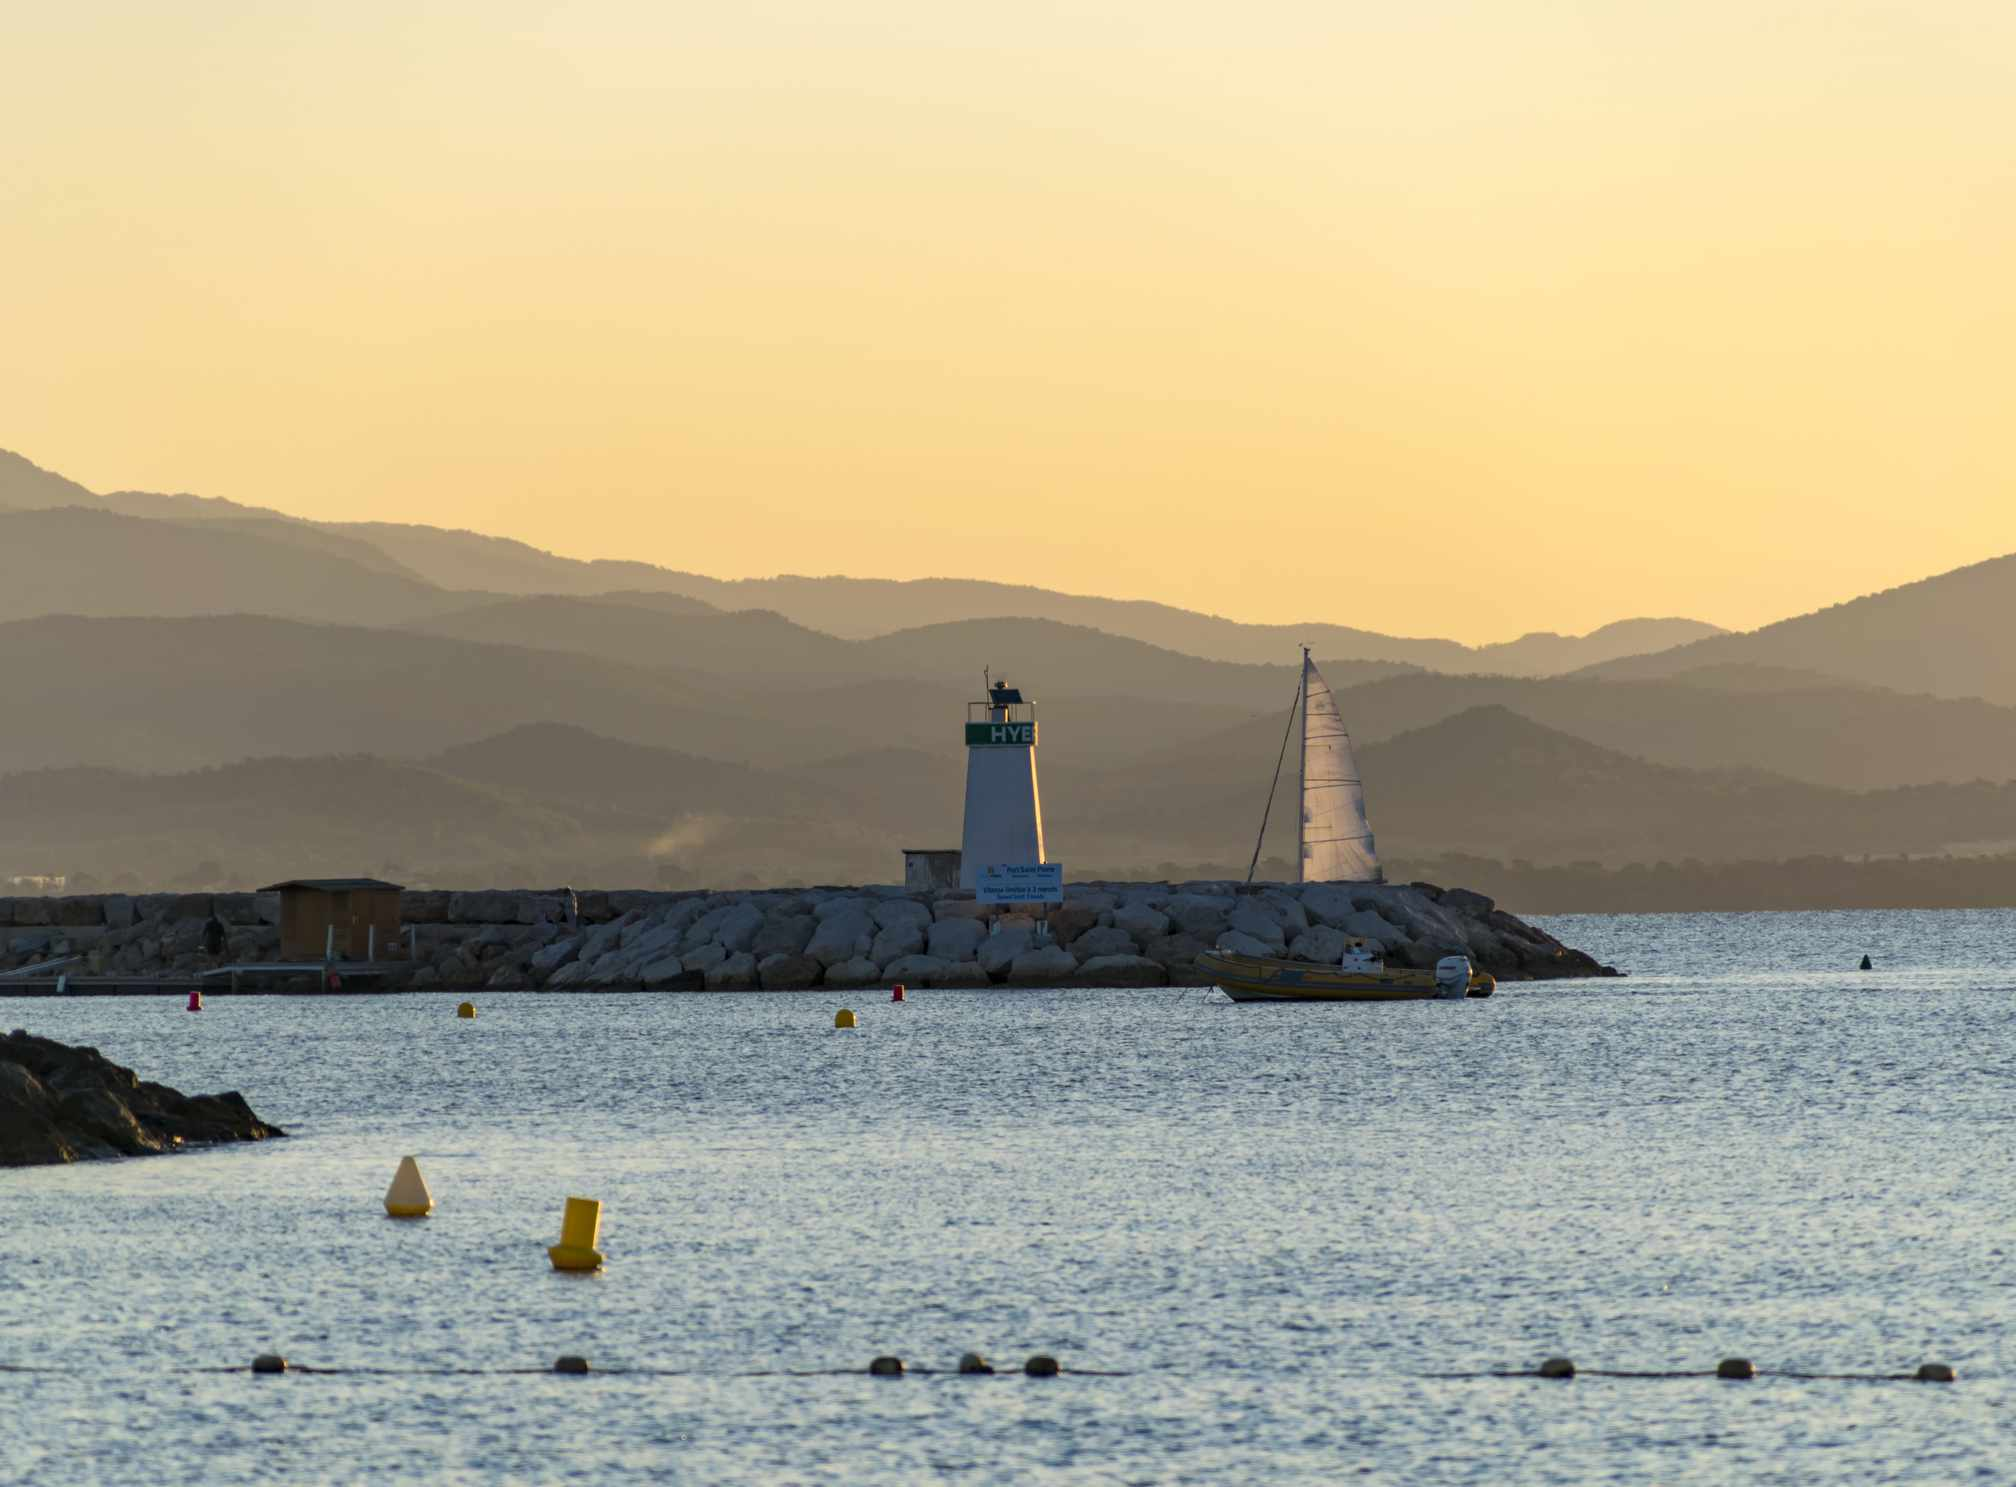 Lighthouse and sailboat at sunset, Hyères, France